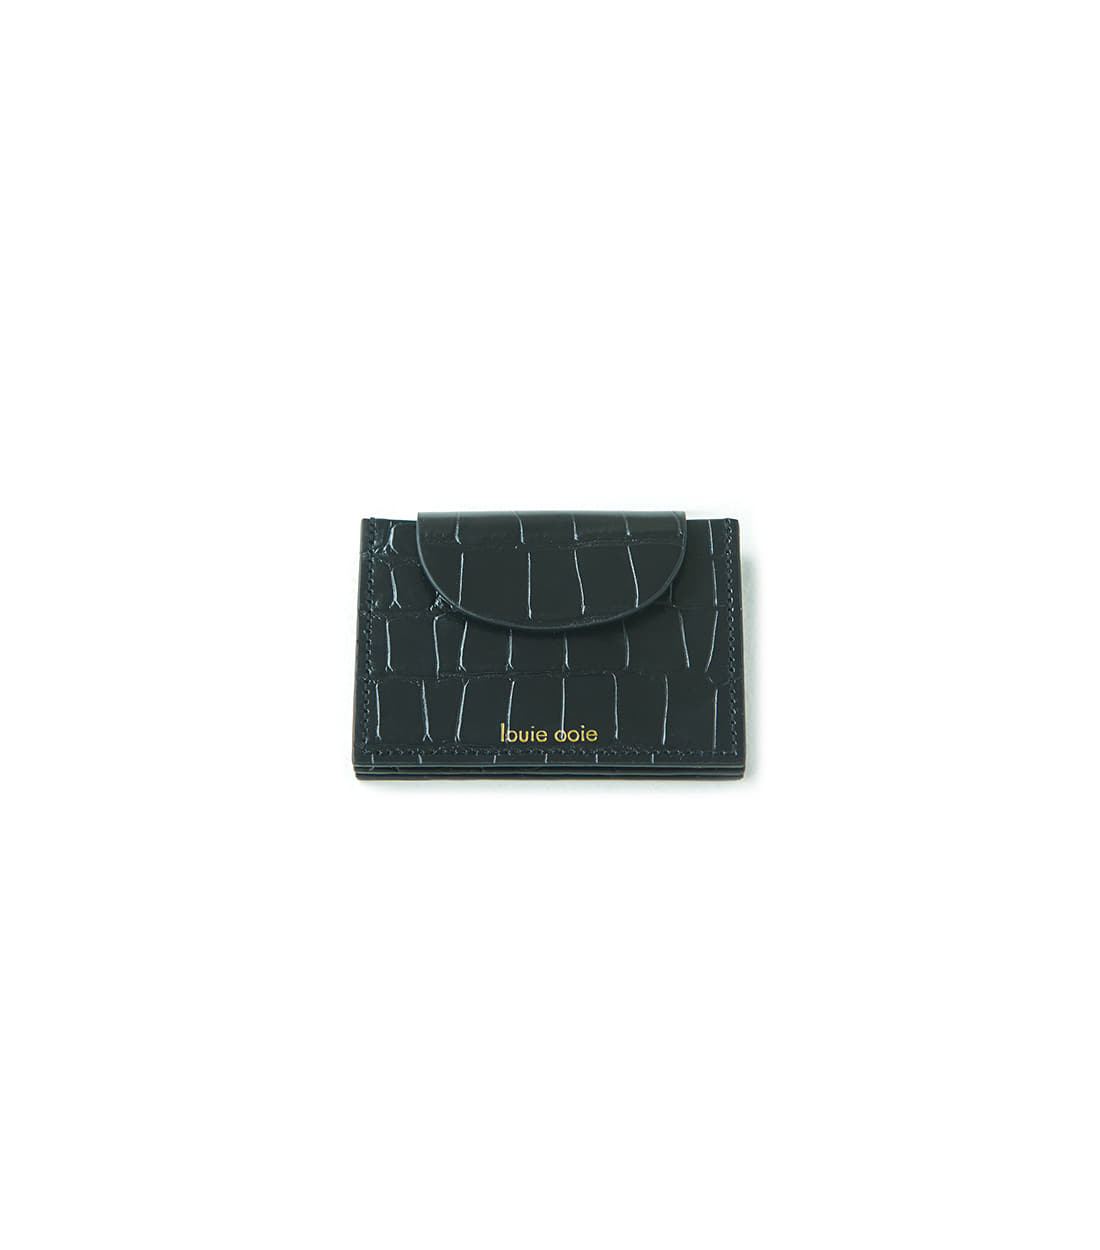 betty card wallet - black embo